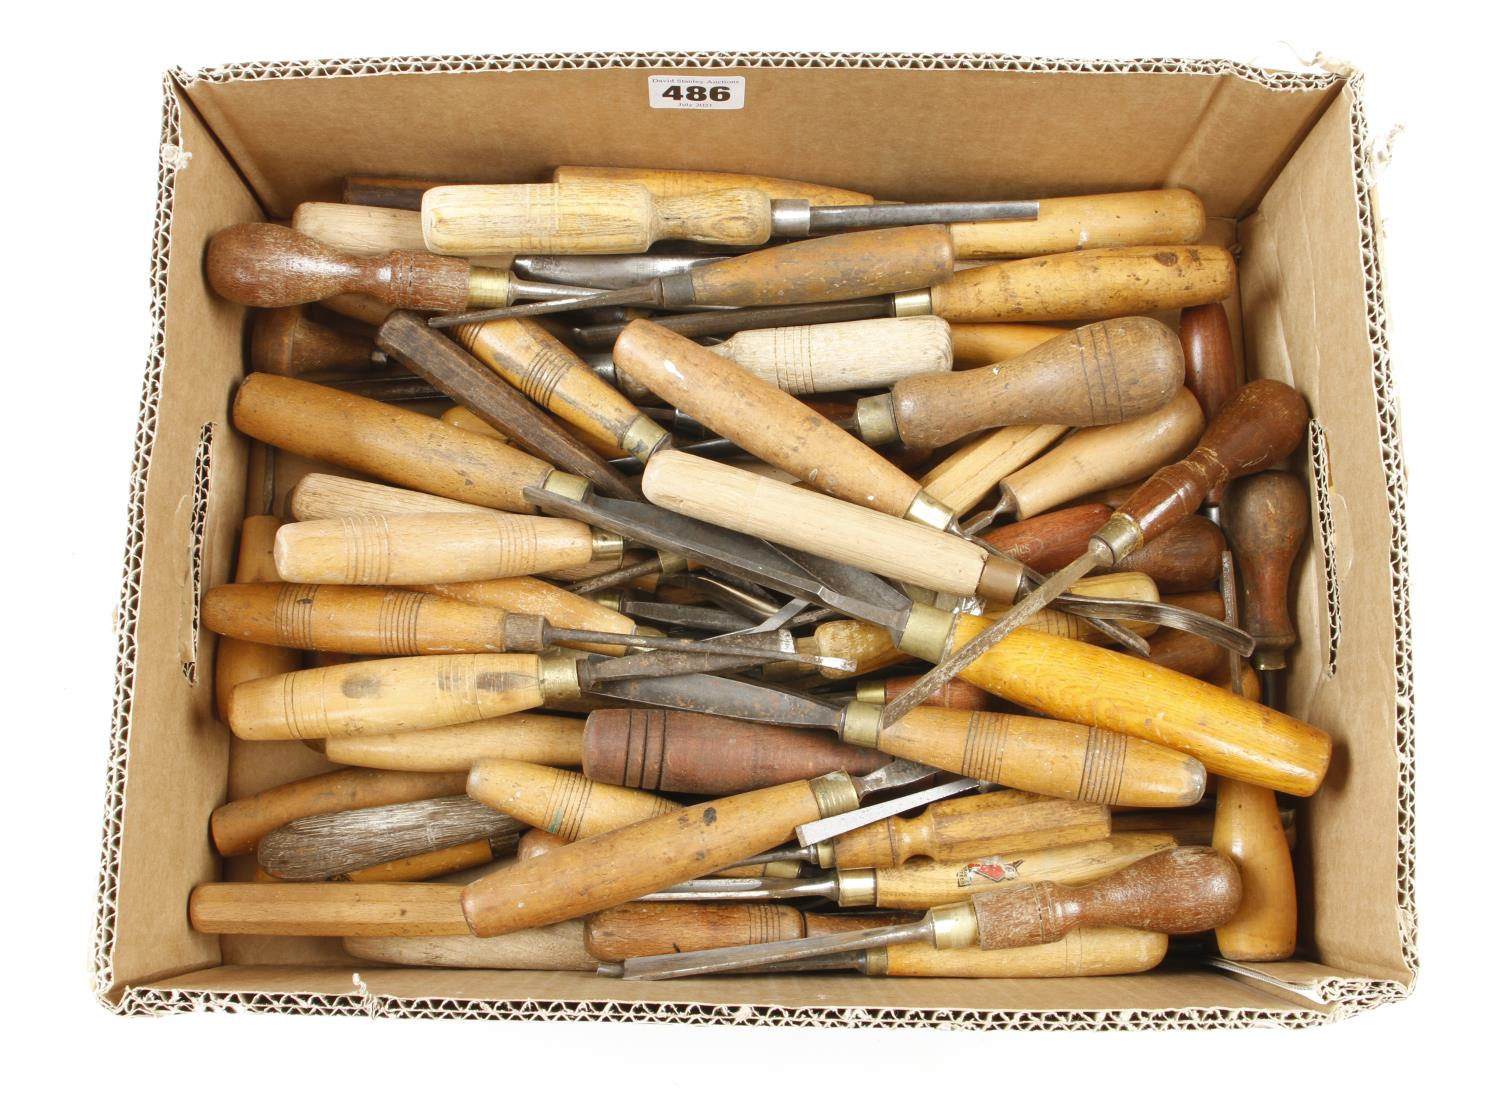 60 carving tools etc G